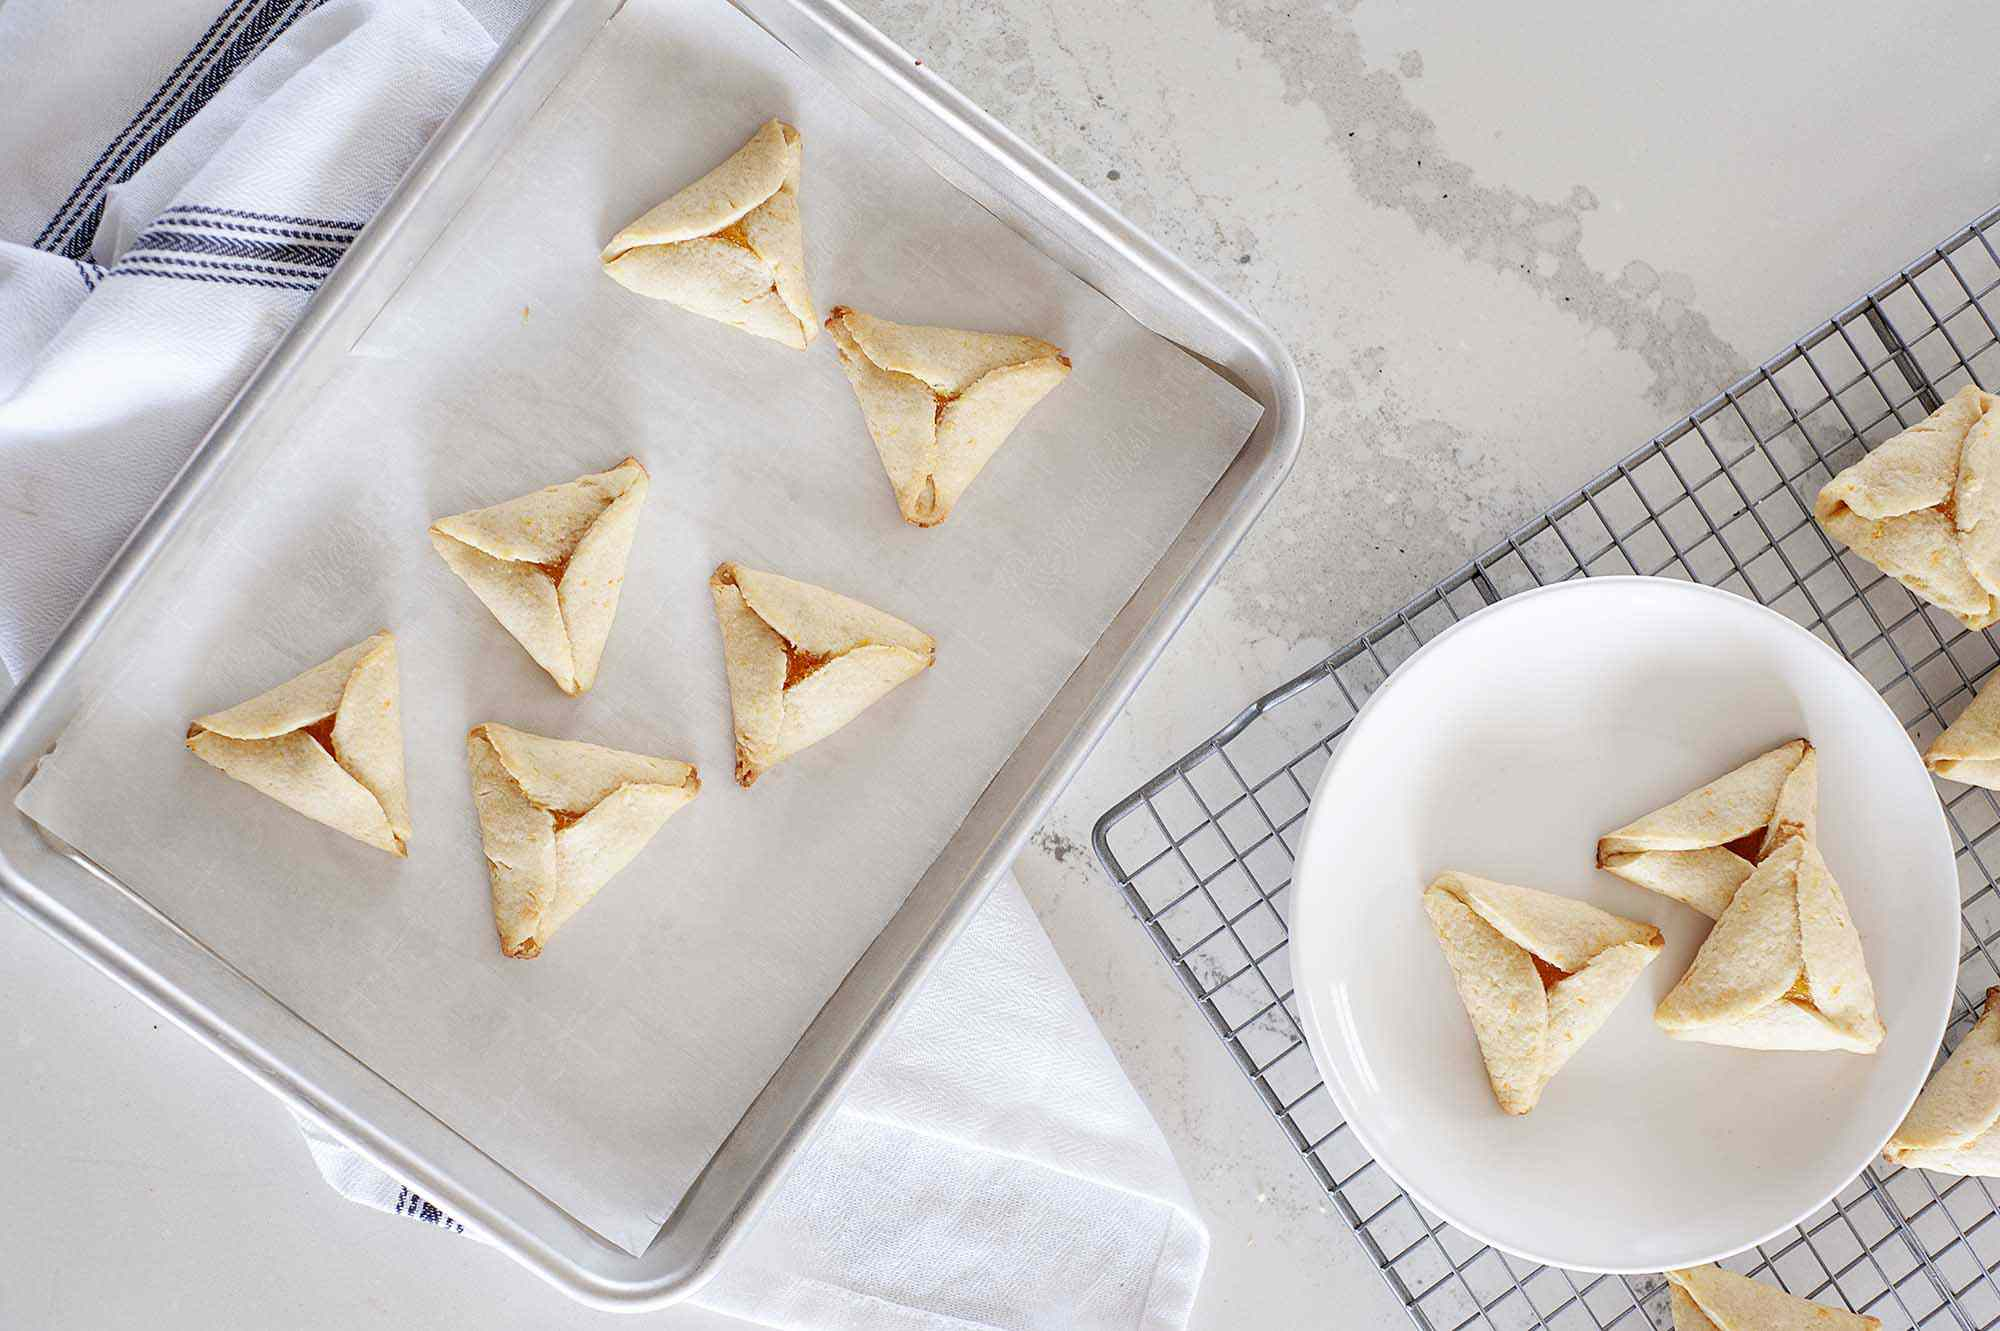 Apricot Hamantaschen on a white plate with a baking sheet set at a diagonal and more of the buttery Apricot Hamantaschen on a cooling rack.